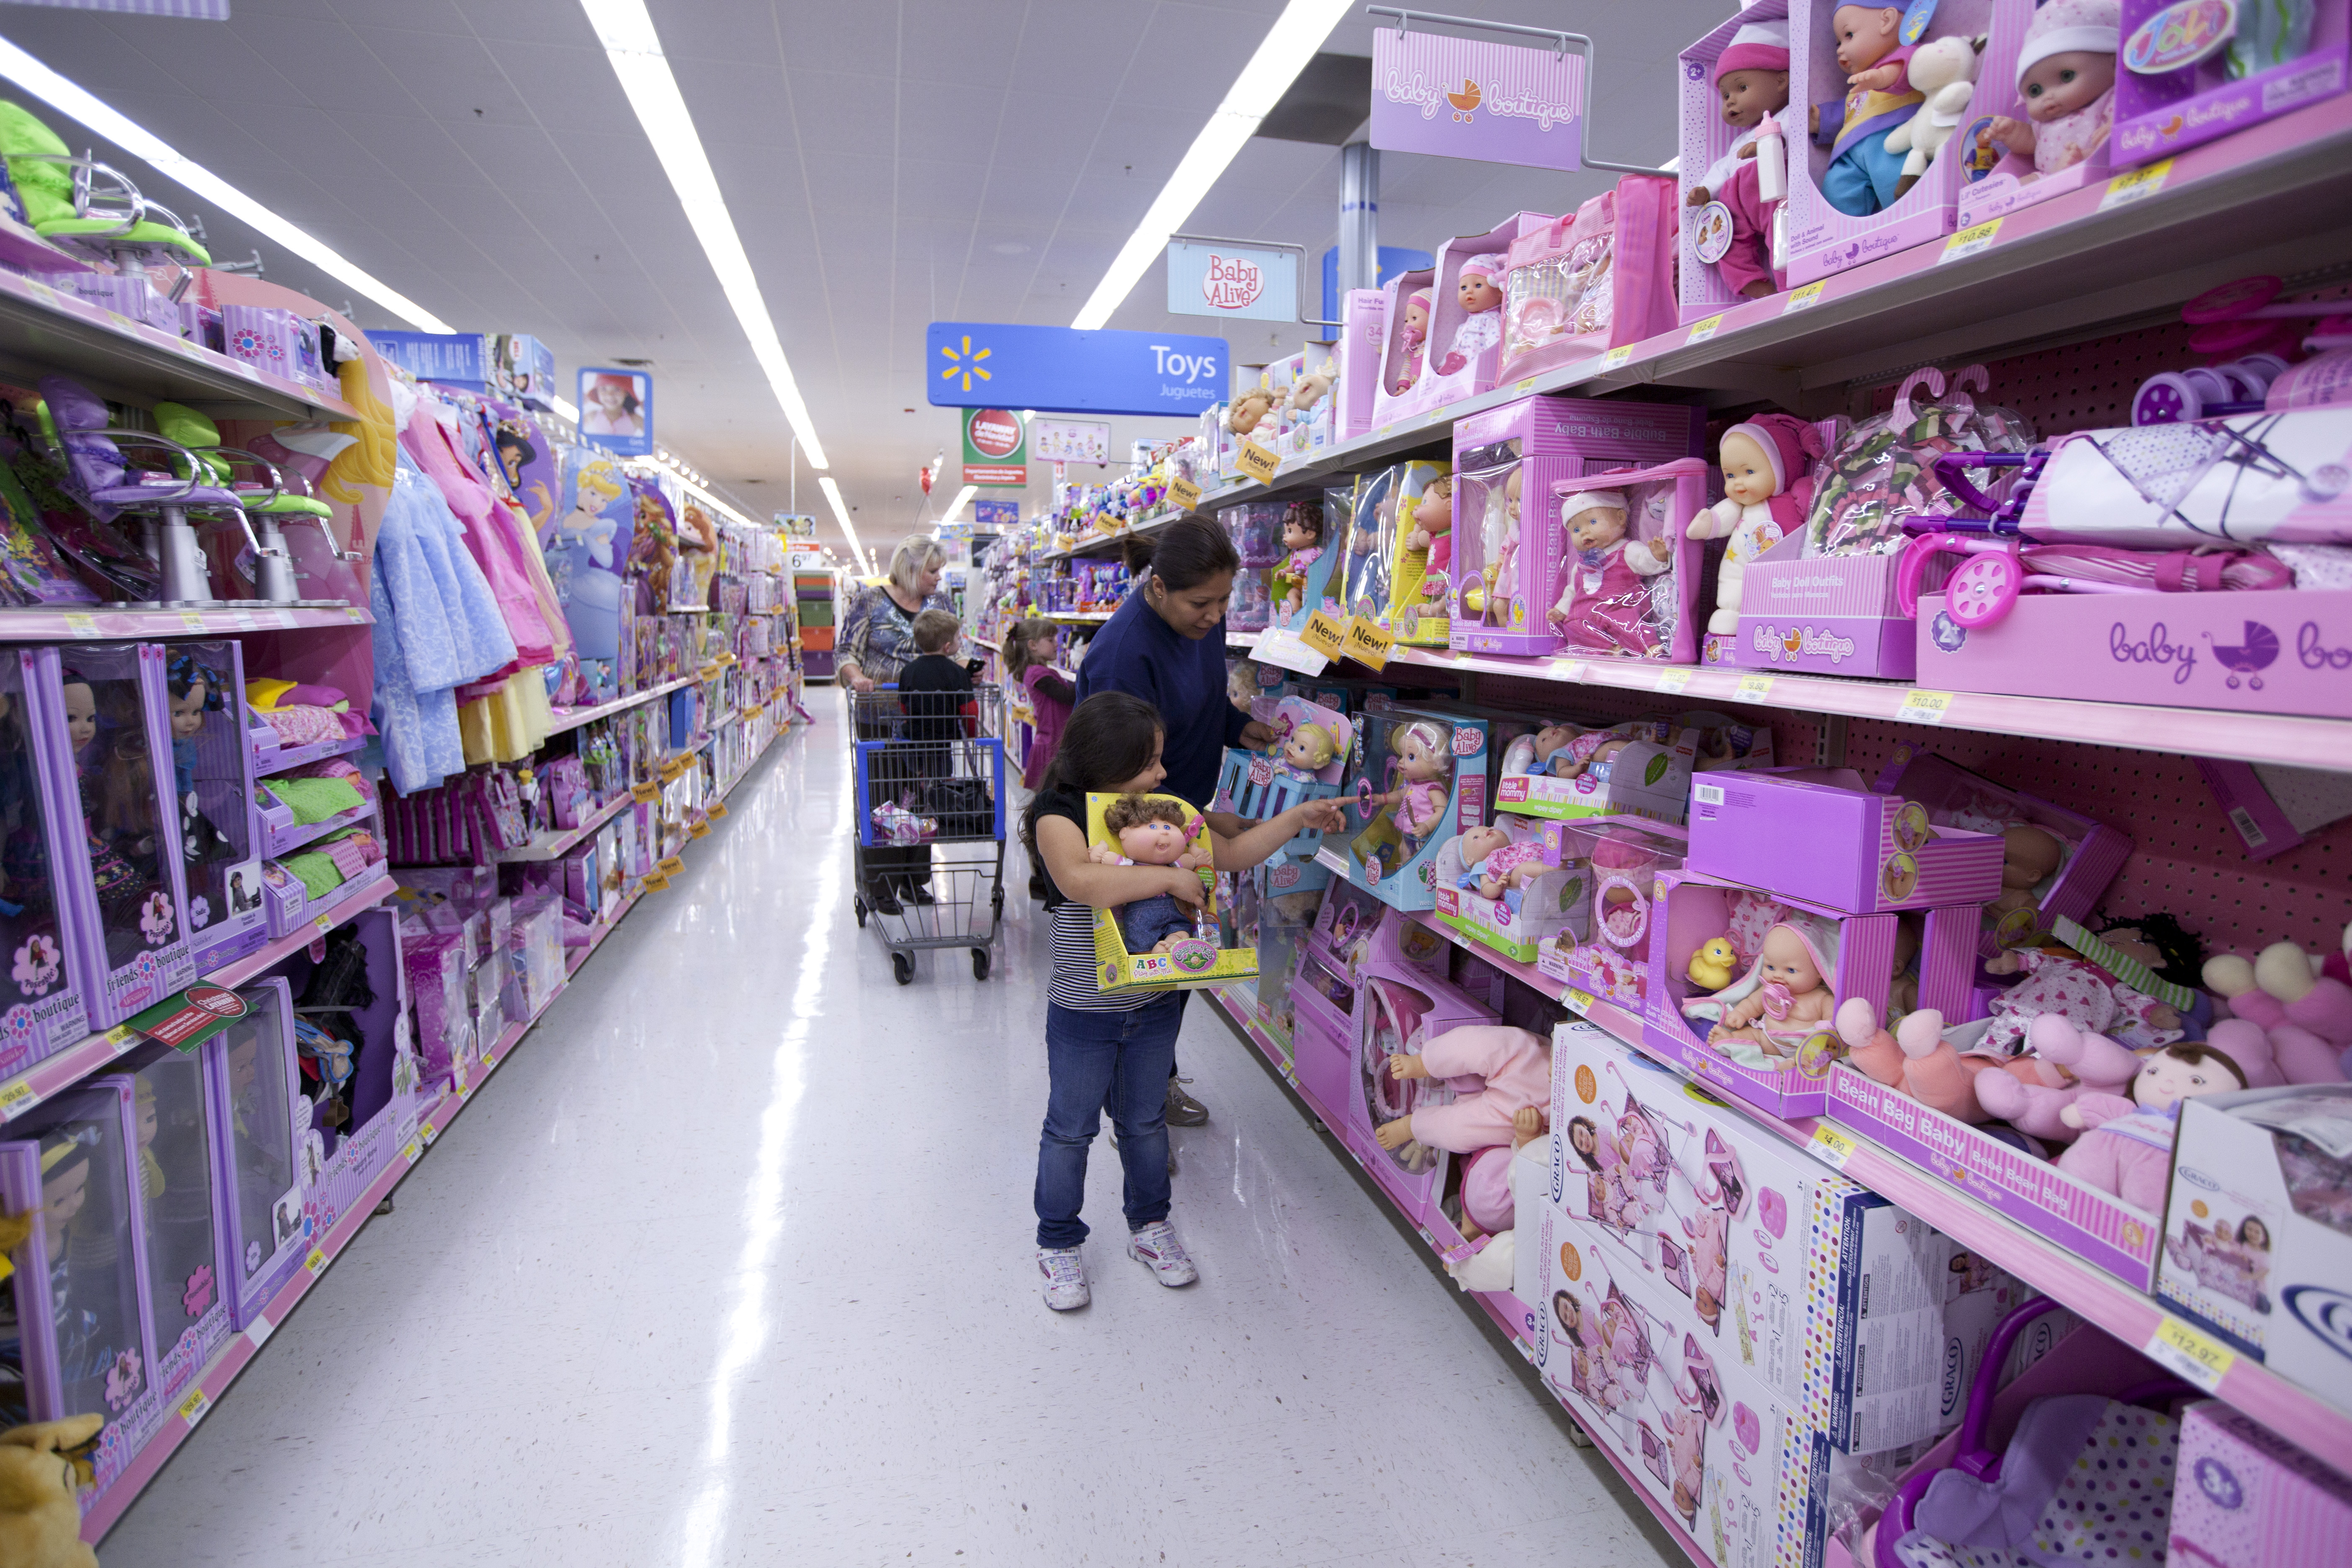 Toys At Walmart : Mother daughter shopping toys